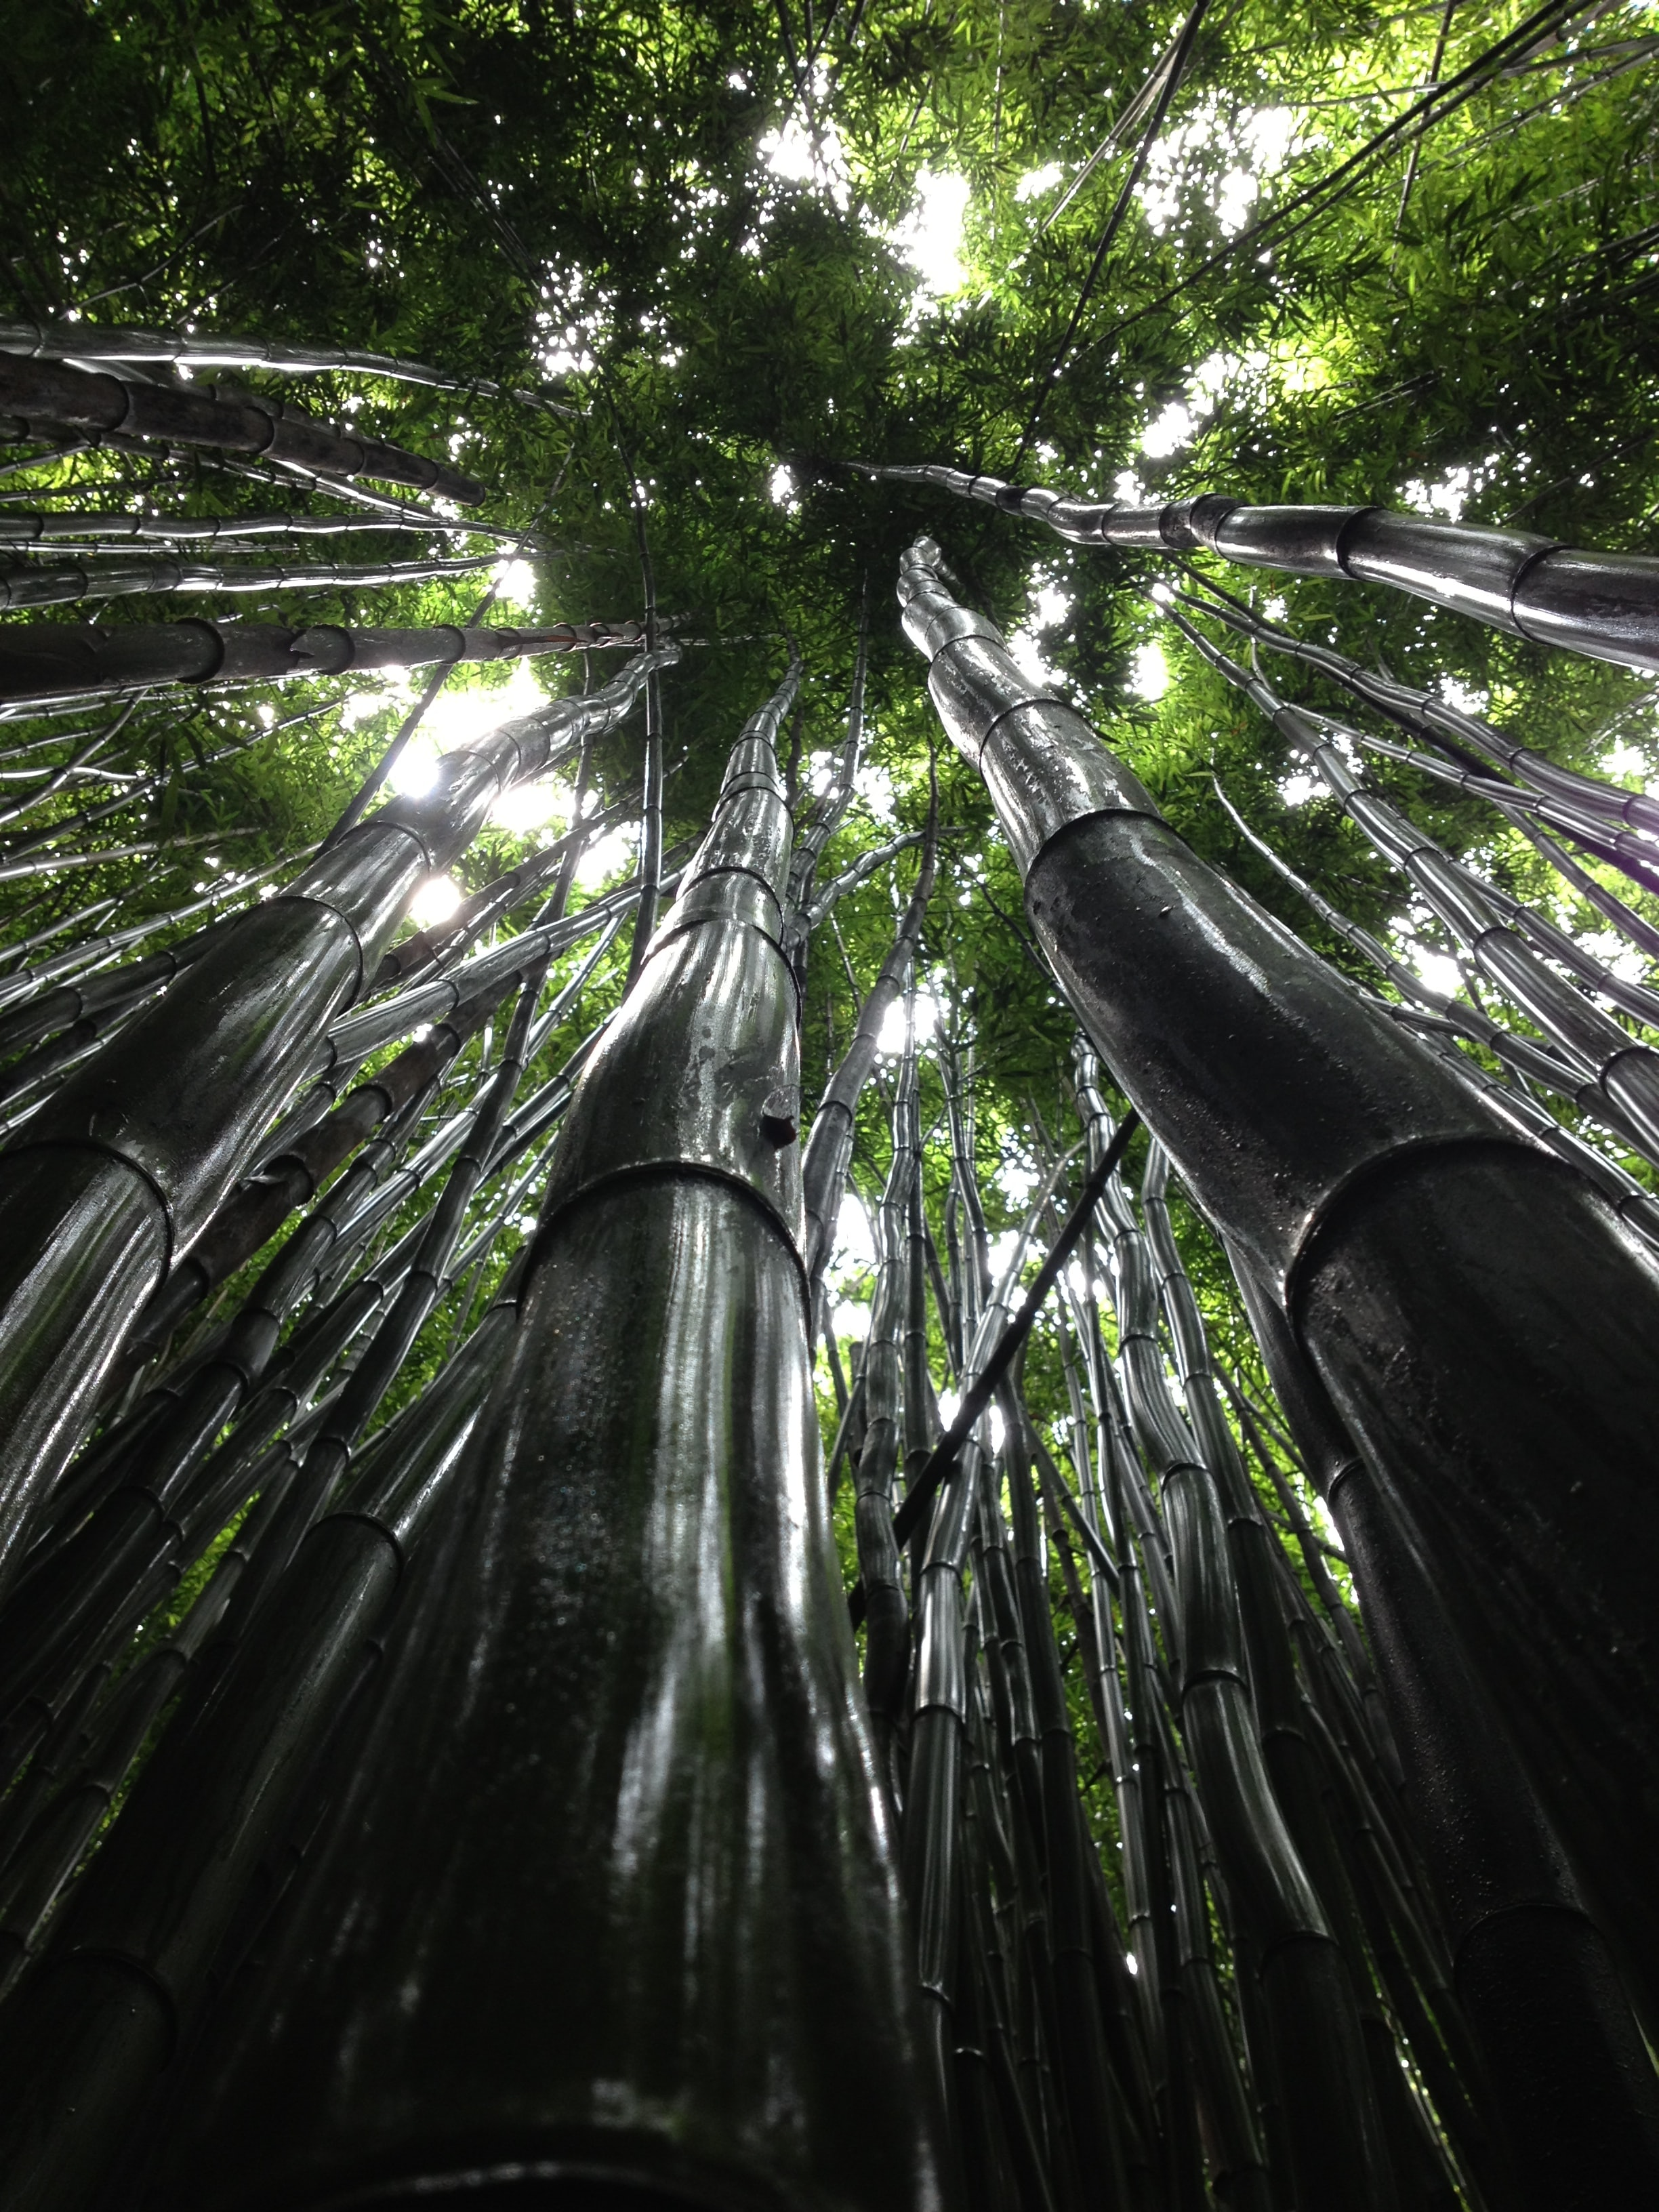 A low-angle shot of a canopy of moist bamboos